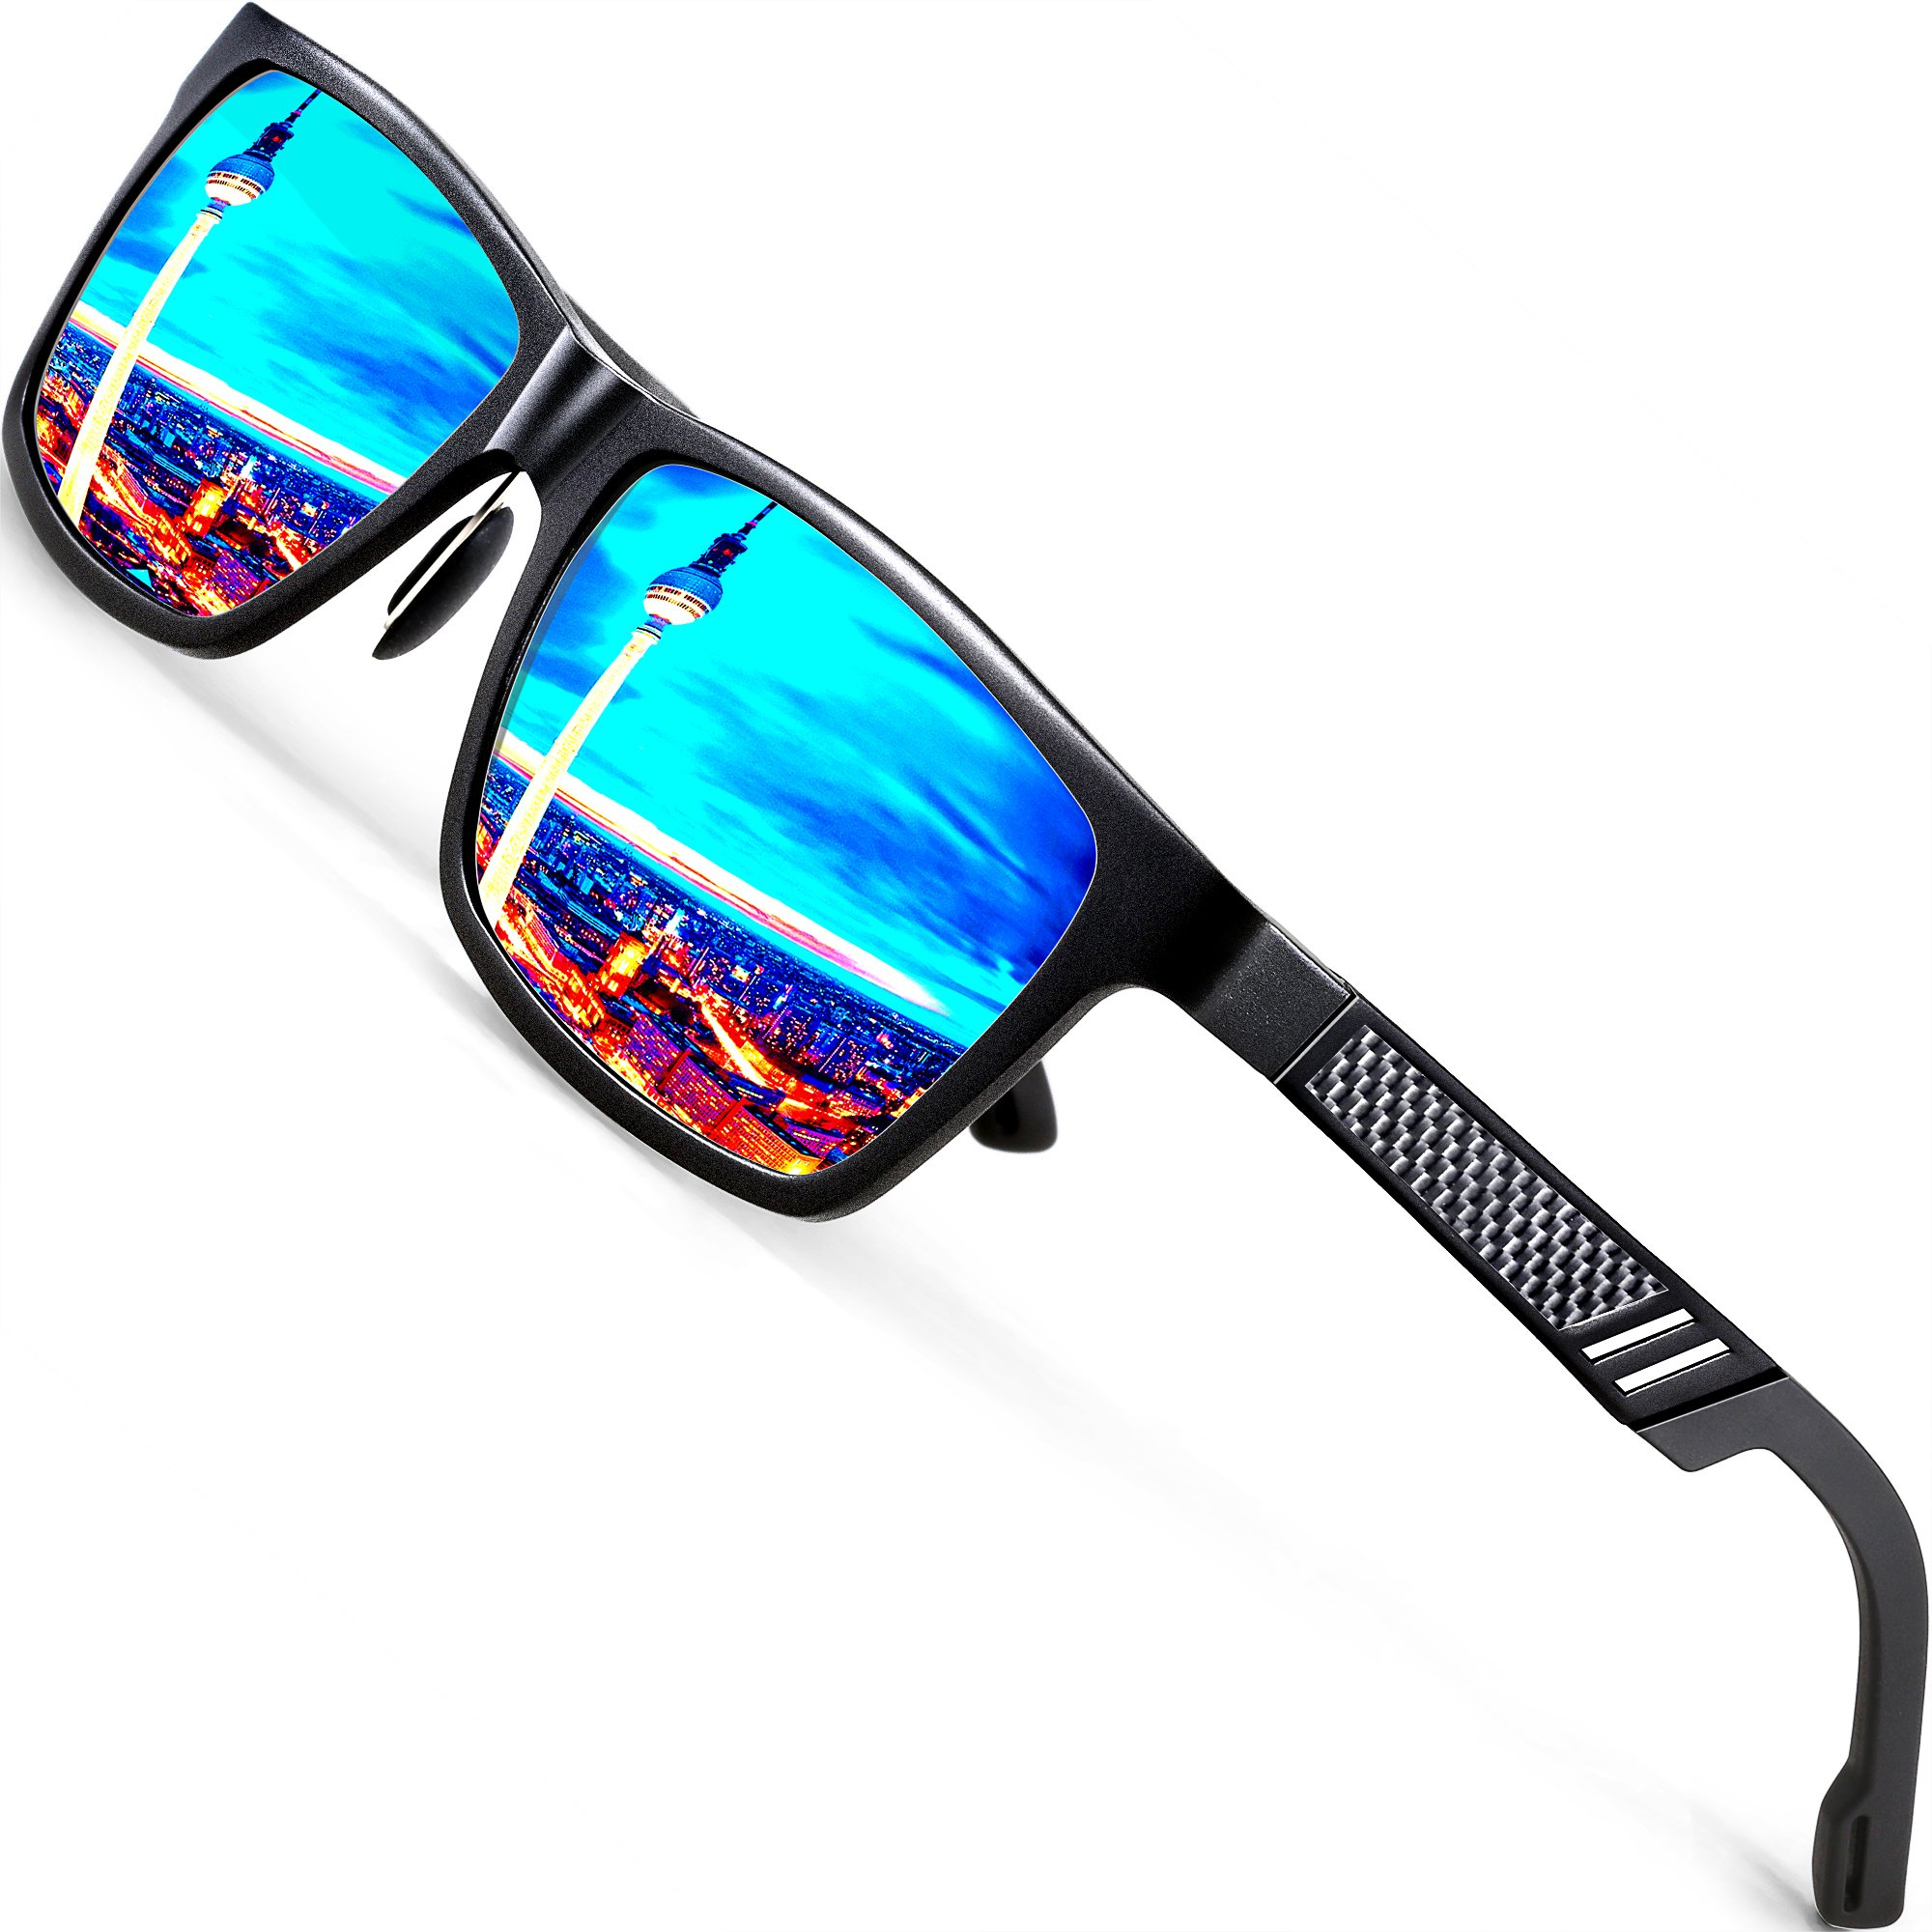 ATTCL Men's Hot Retro Driving Polarized Wayfarer Sunglasses Al-Mg Metal Frame Ultra Light (Black/Blue, 6560)